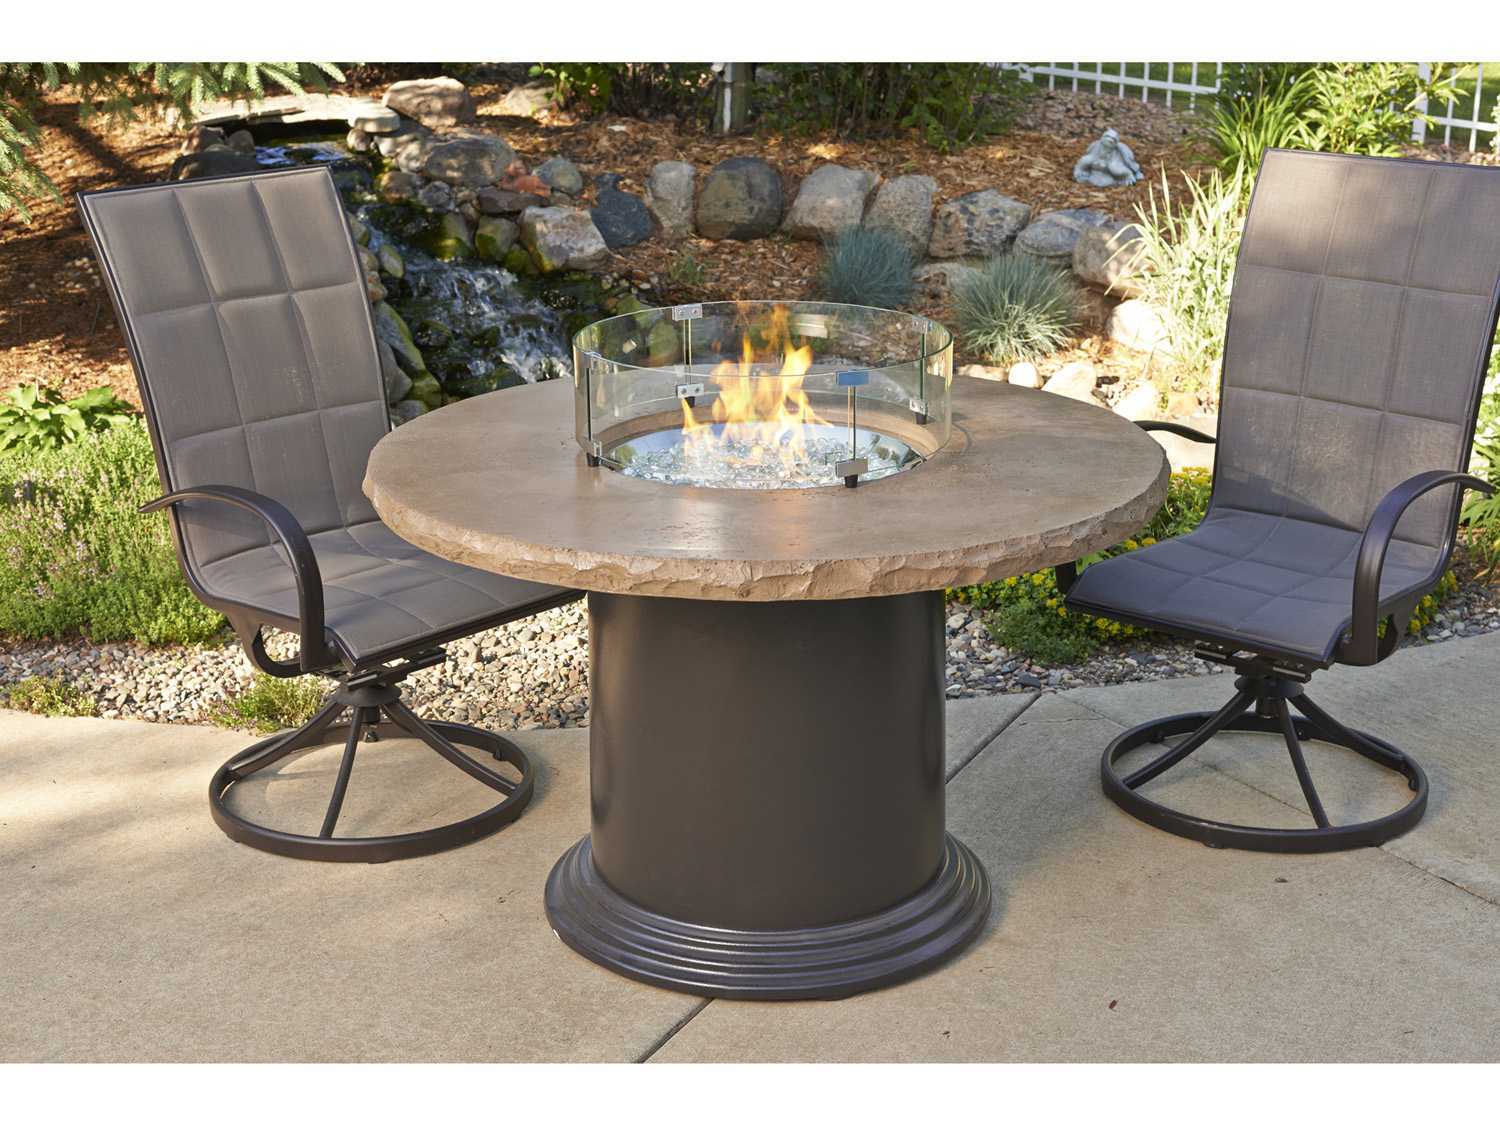 100 fortunoff outdoor furniture locations gas grills